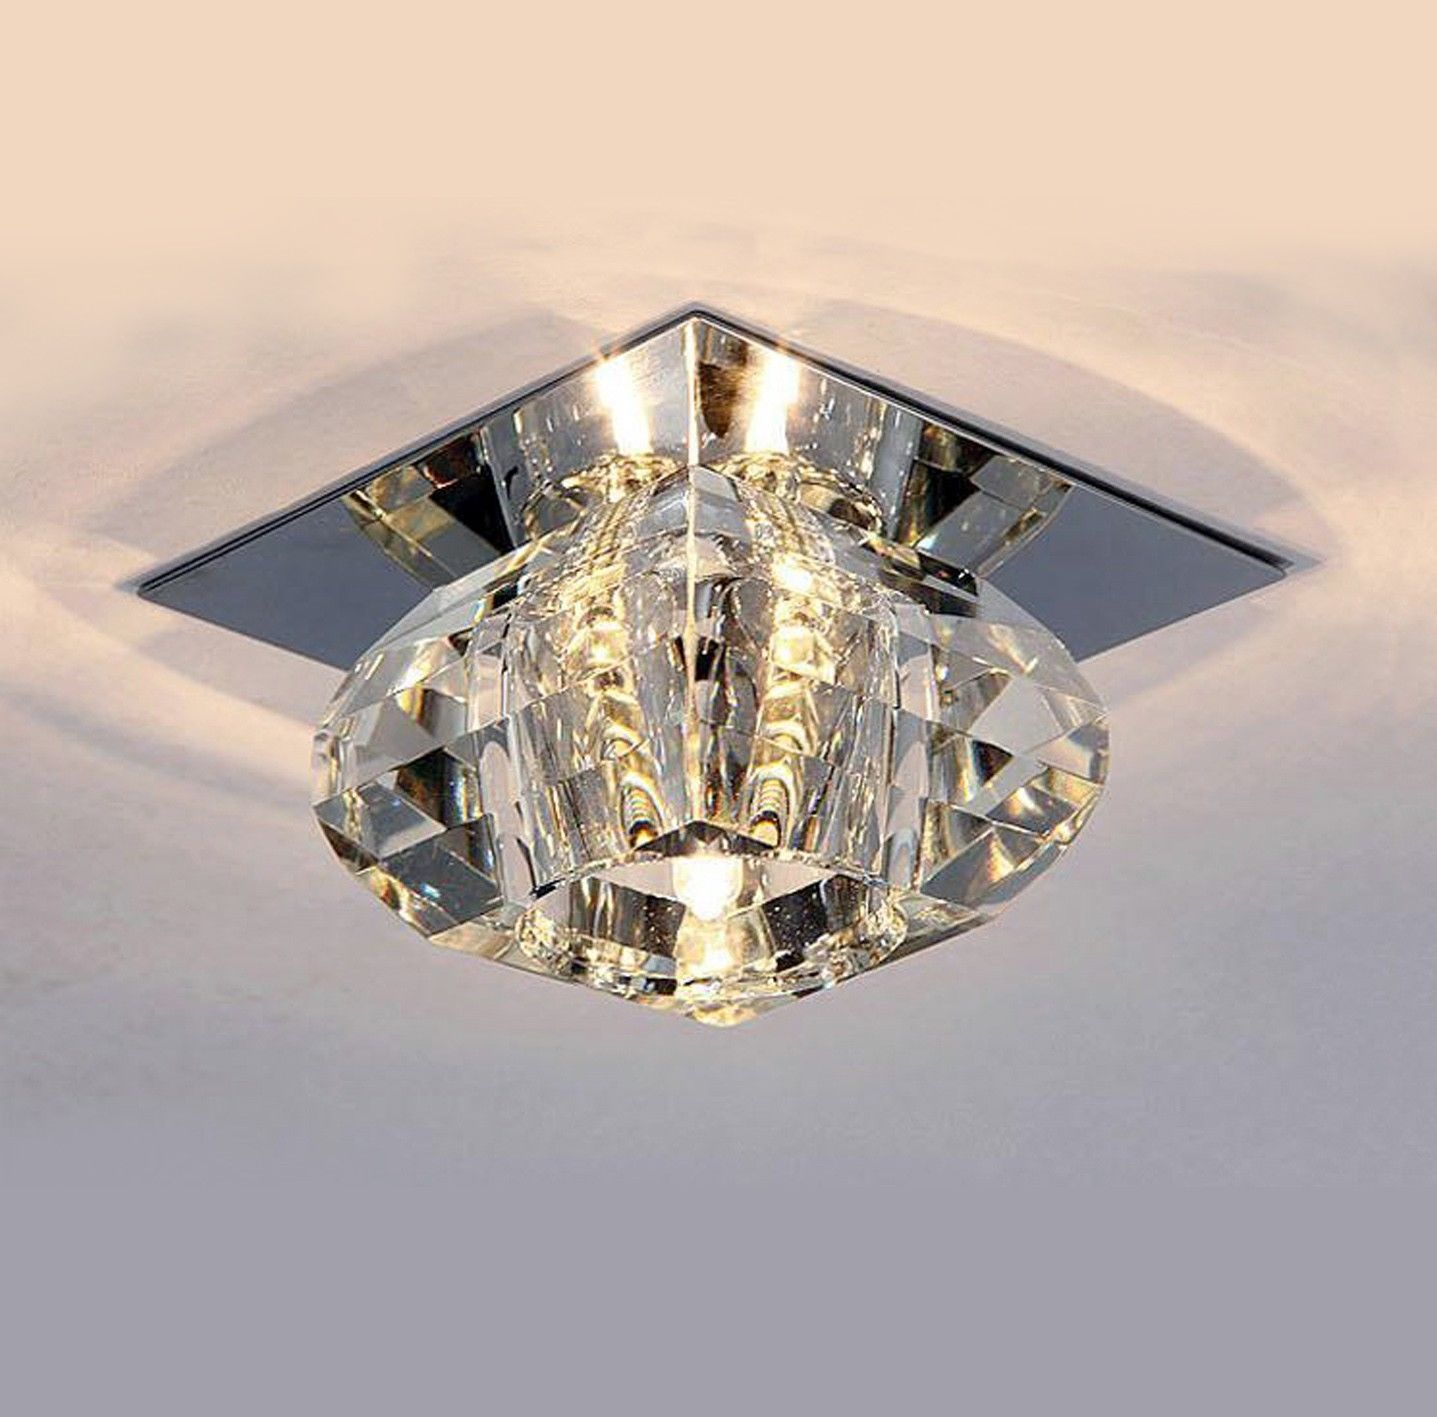 Modern crystal led ceiling light pendant lamp fixture lighting modern crystal led ceiling light pendant lamp fixture lighting chandelier ebay arubaitofo Image collections